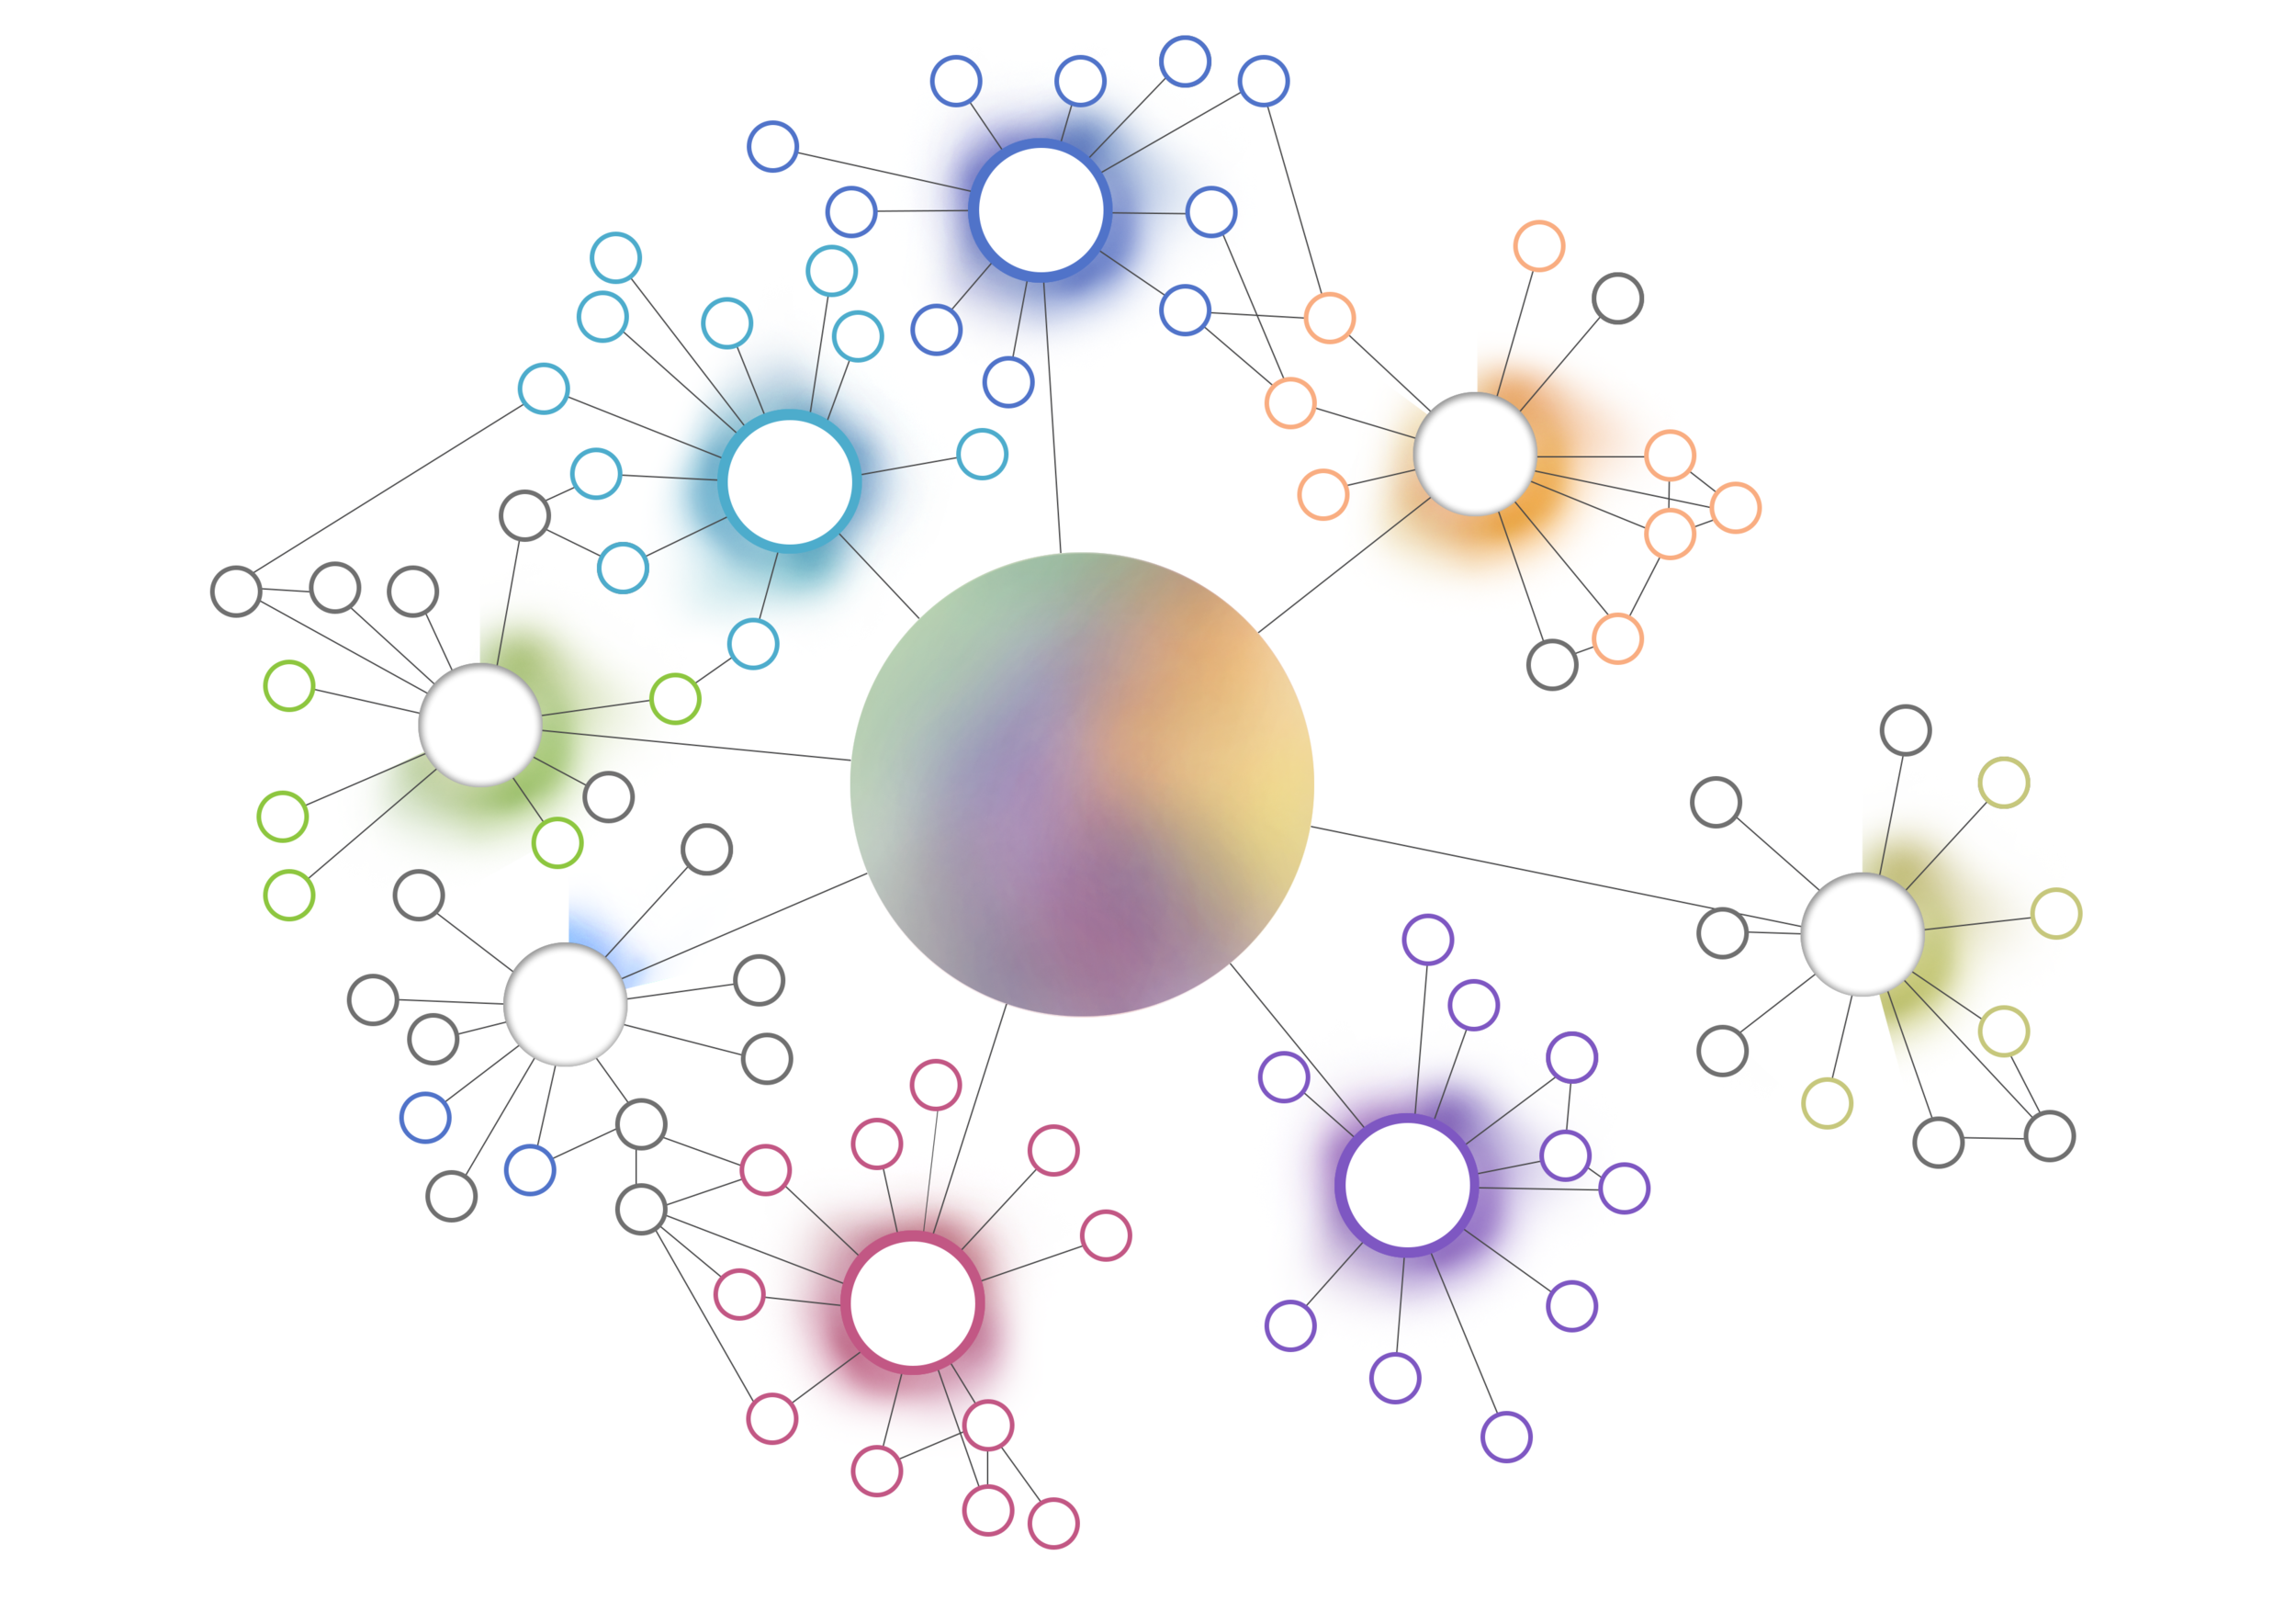 The Hub - Built upon a collection of related nodes. In person, group based, expert guided. Taking the nodes and working towards higher order thinking (blooms taxonomy - analyse, evaluate, create)